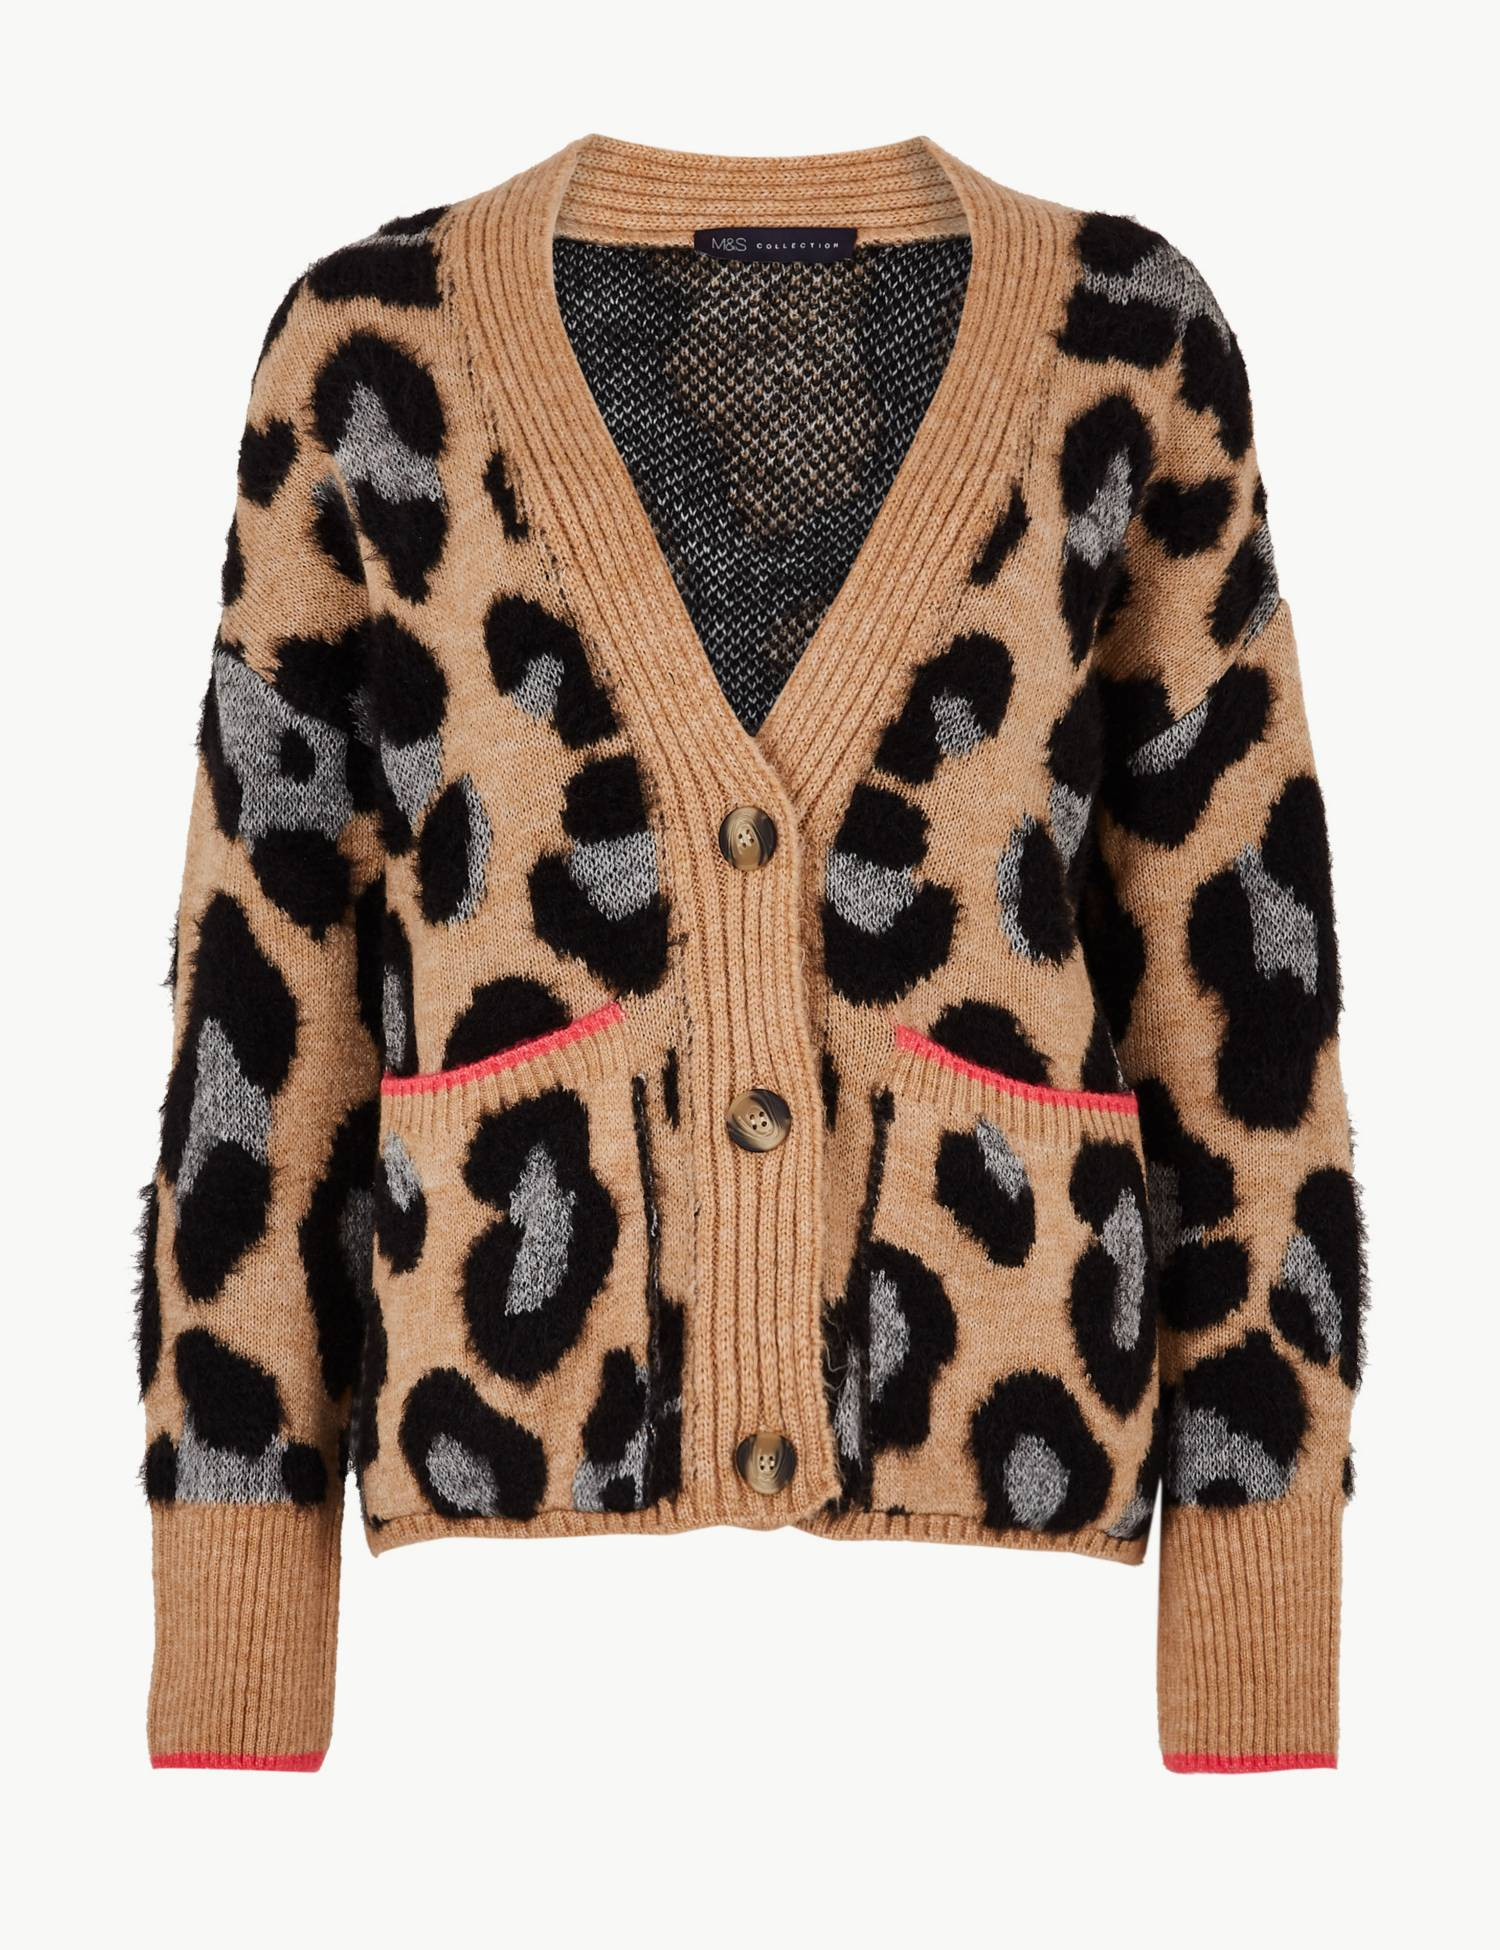 Fluffy leopard cardigan from M&S